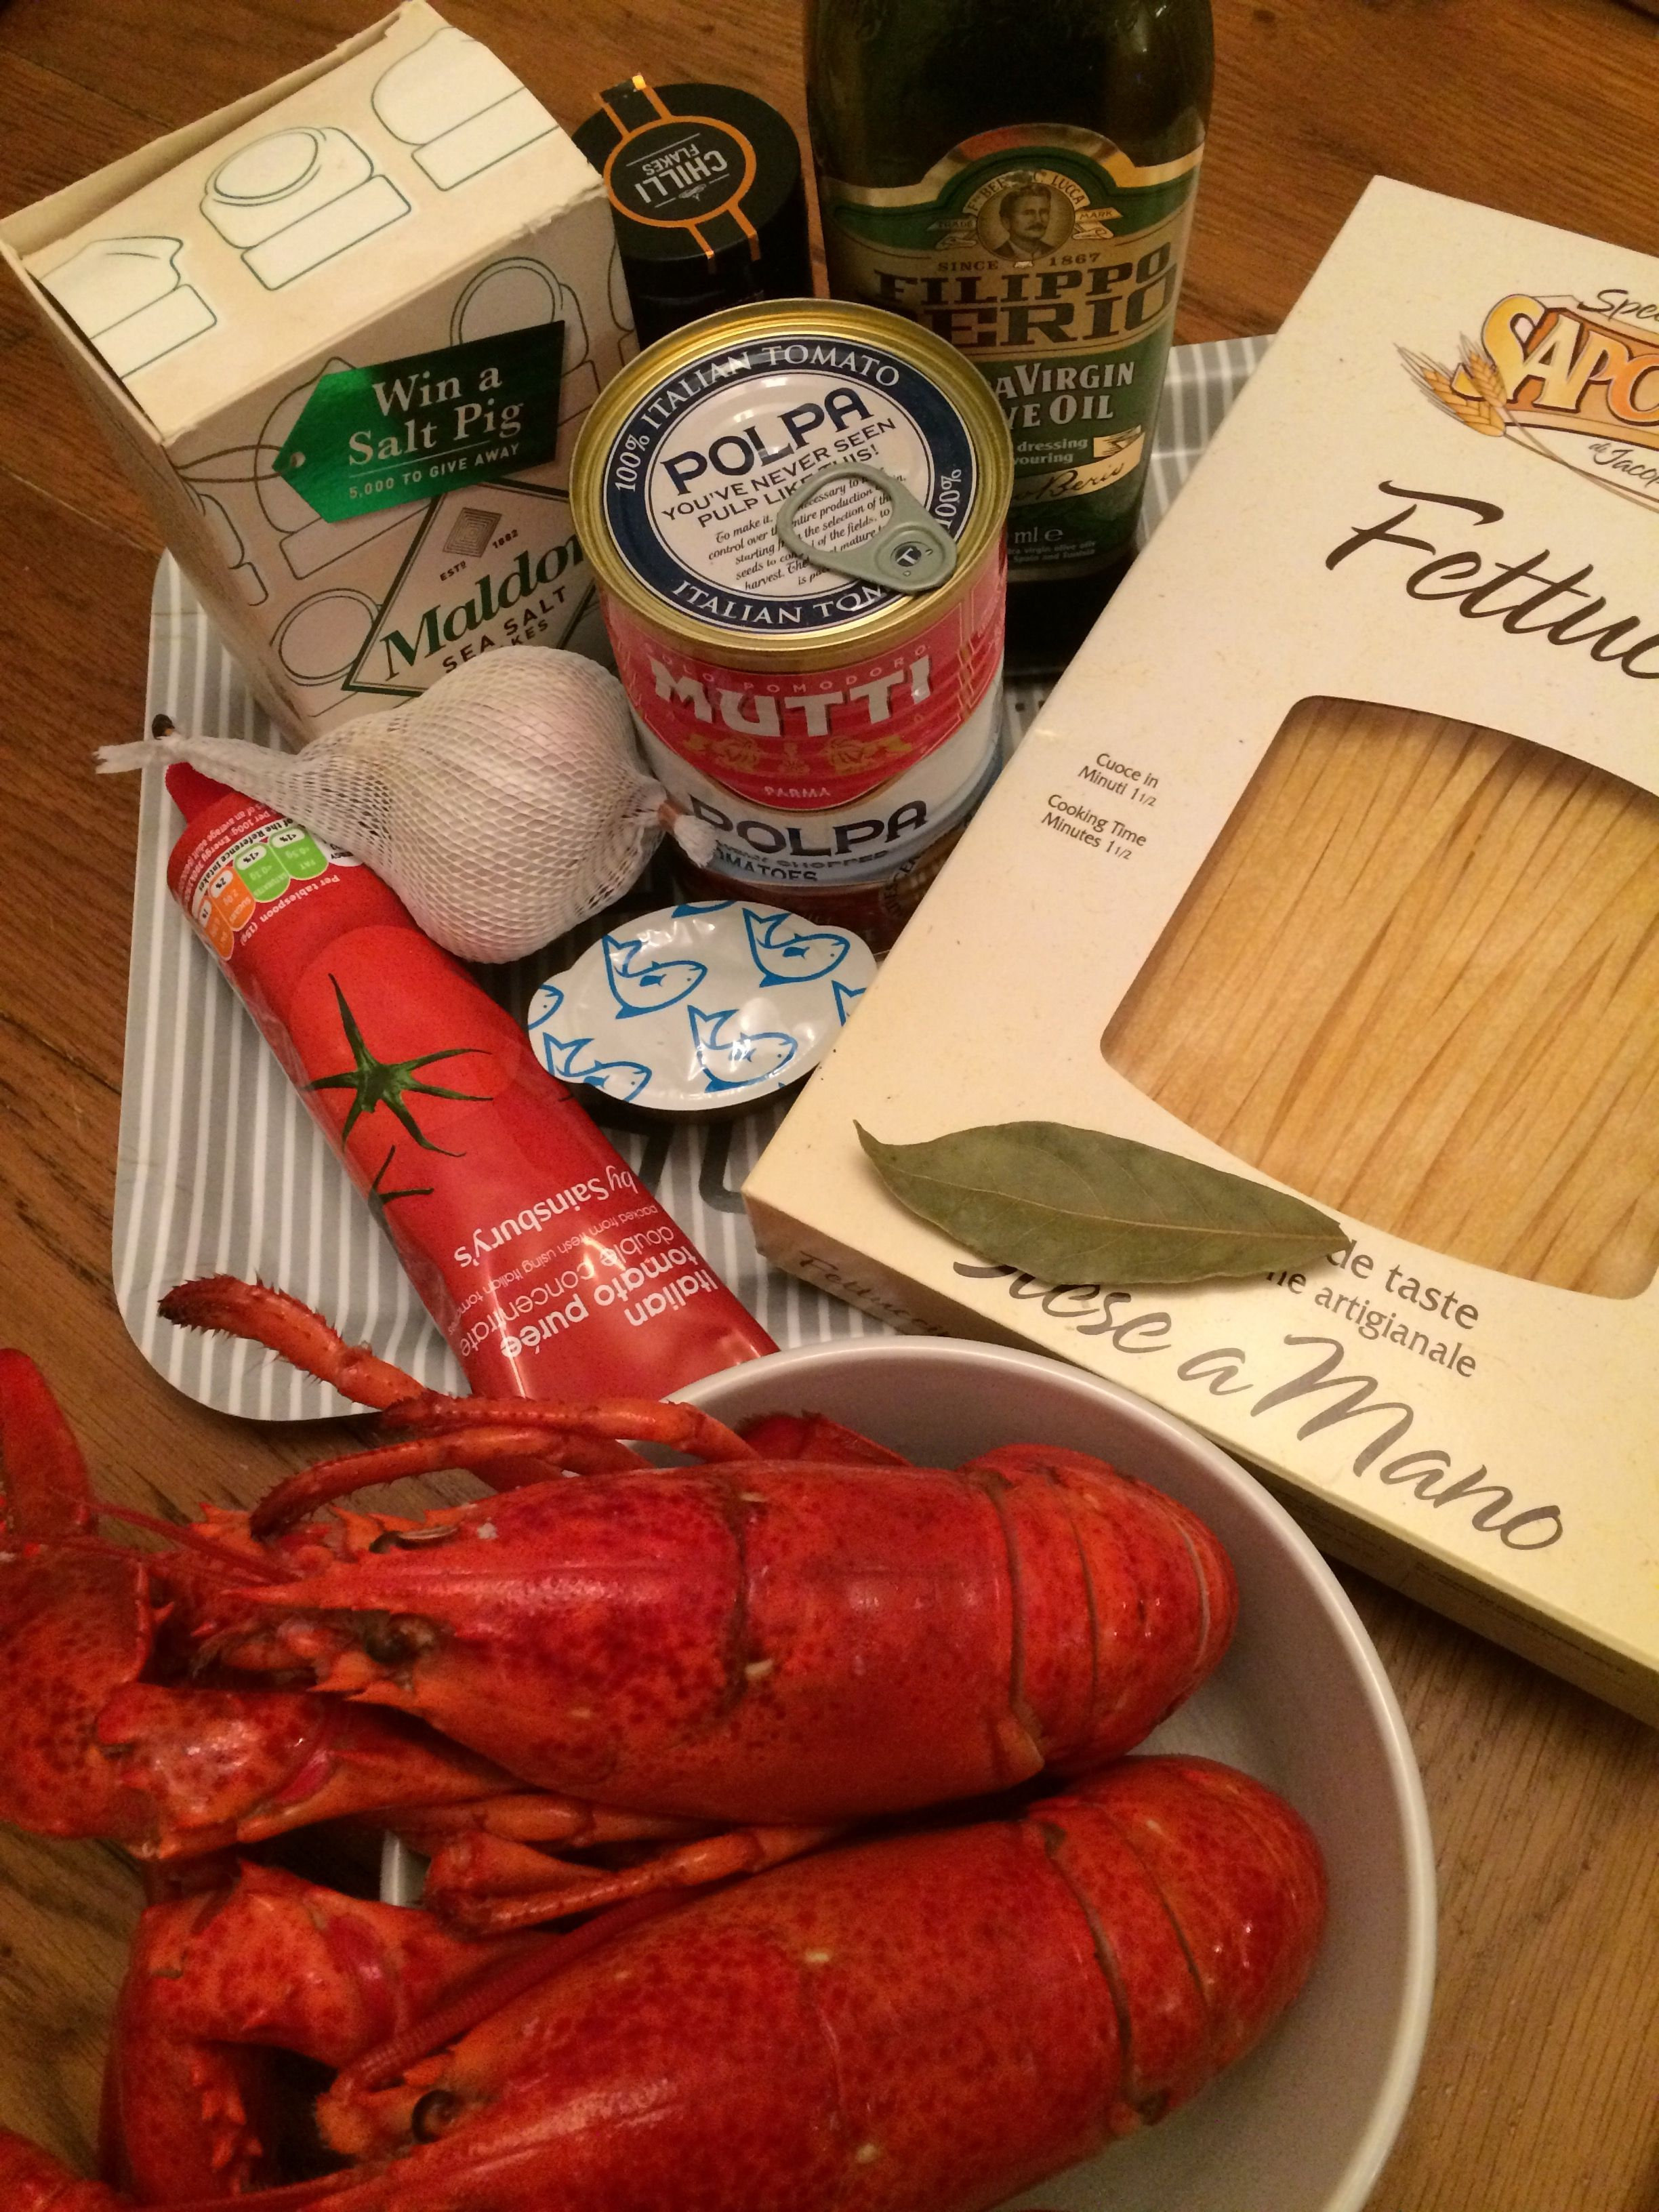 Simple Lobster Fra Diavolo Recipe Fit For A Christmas Eve Feast Lobster Fra Diavolo Recipe Lobster Stew Stew Recipes